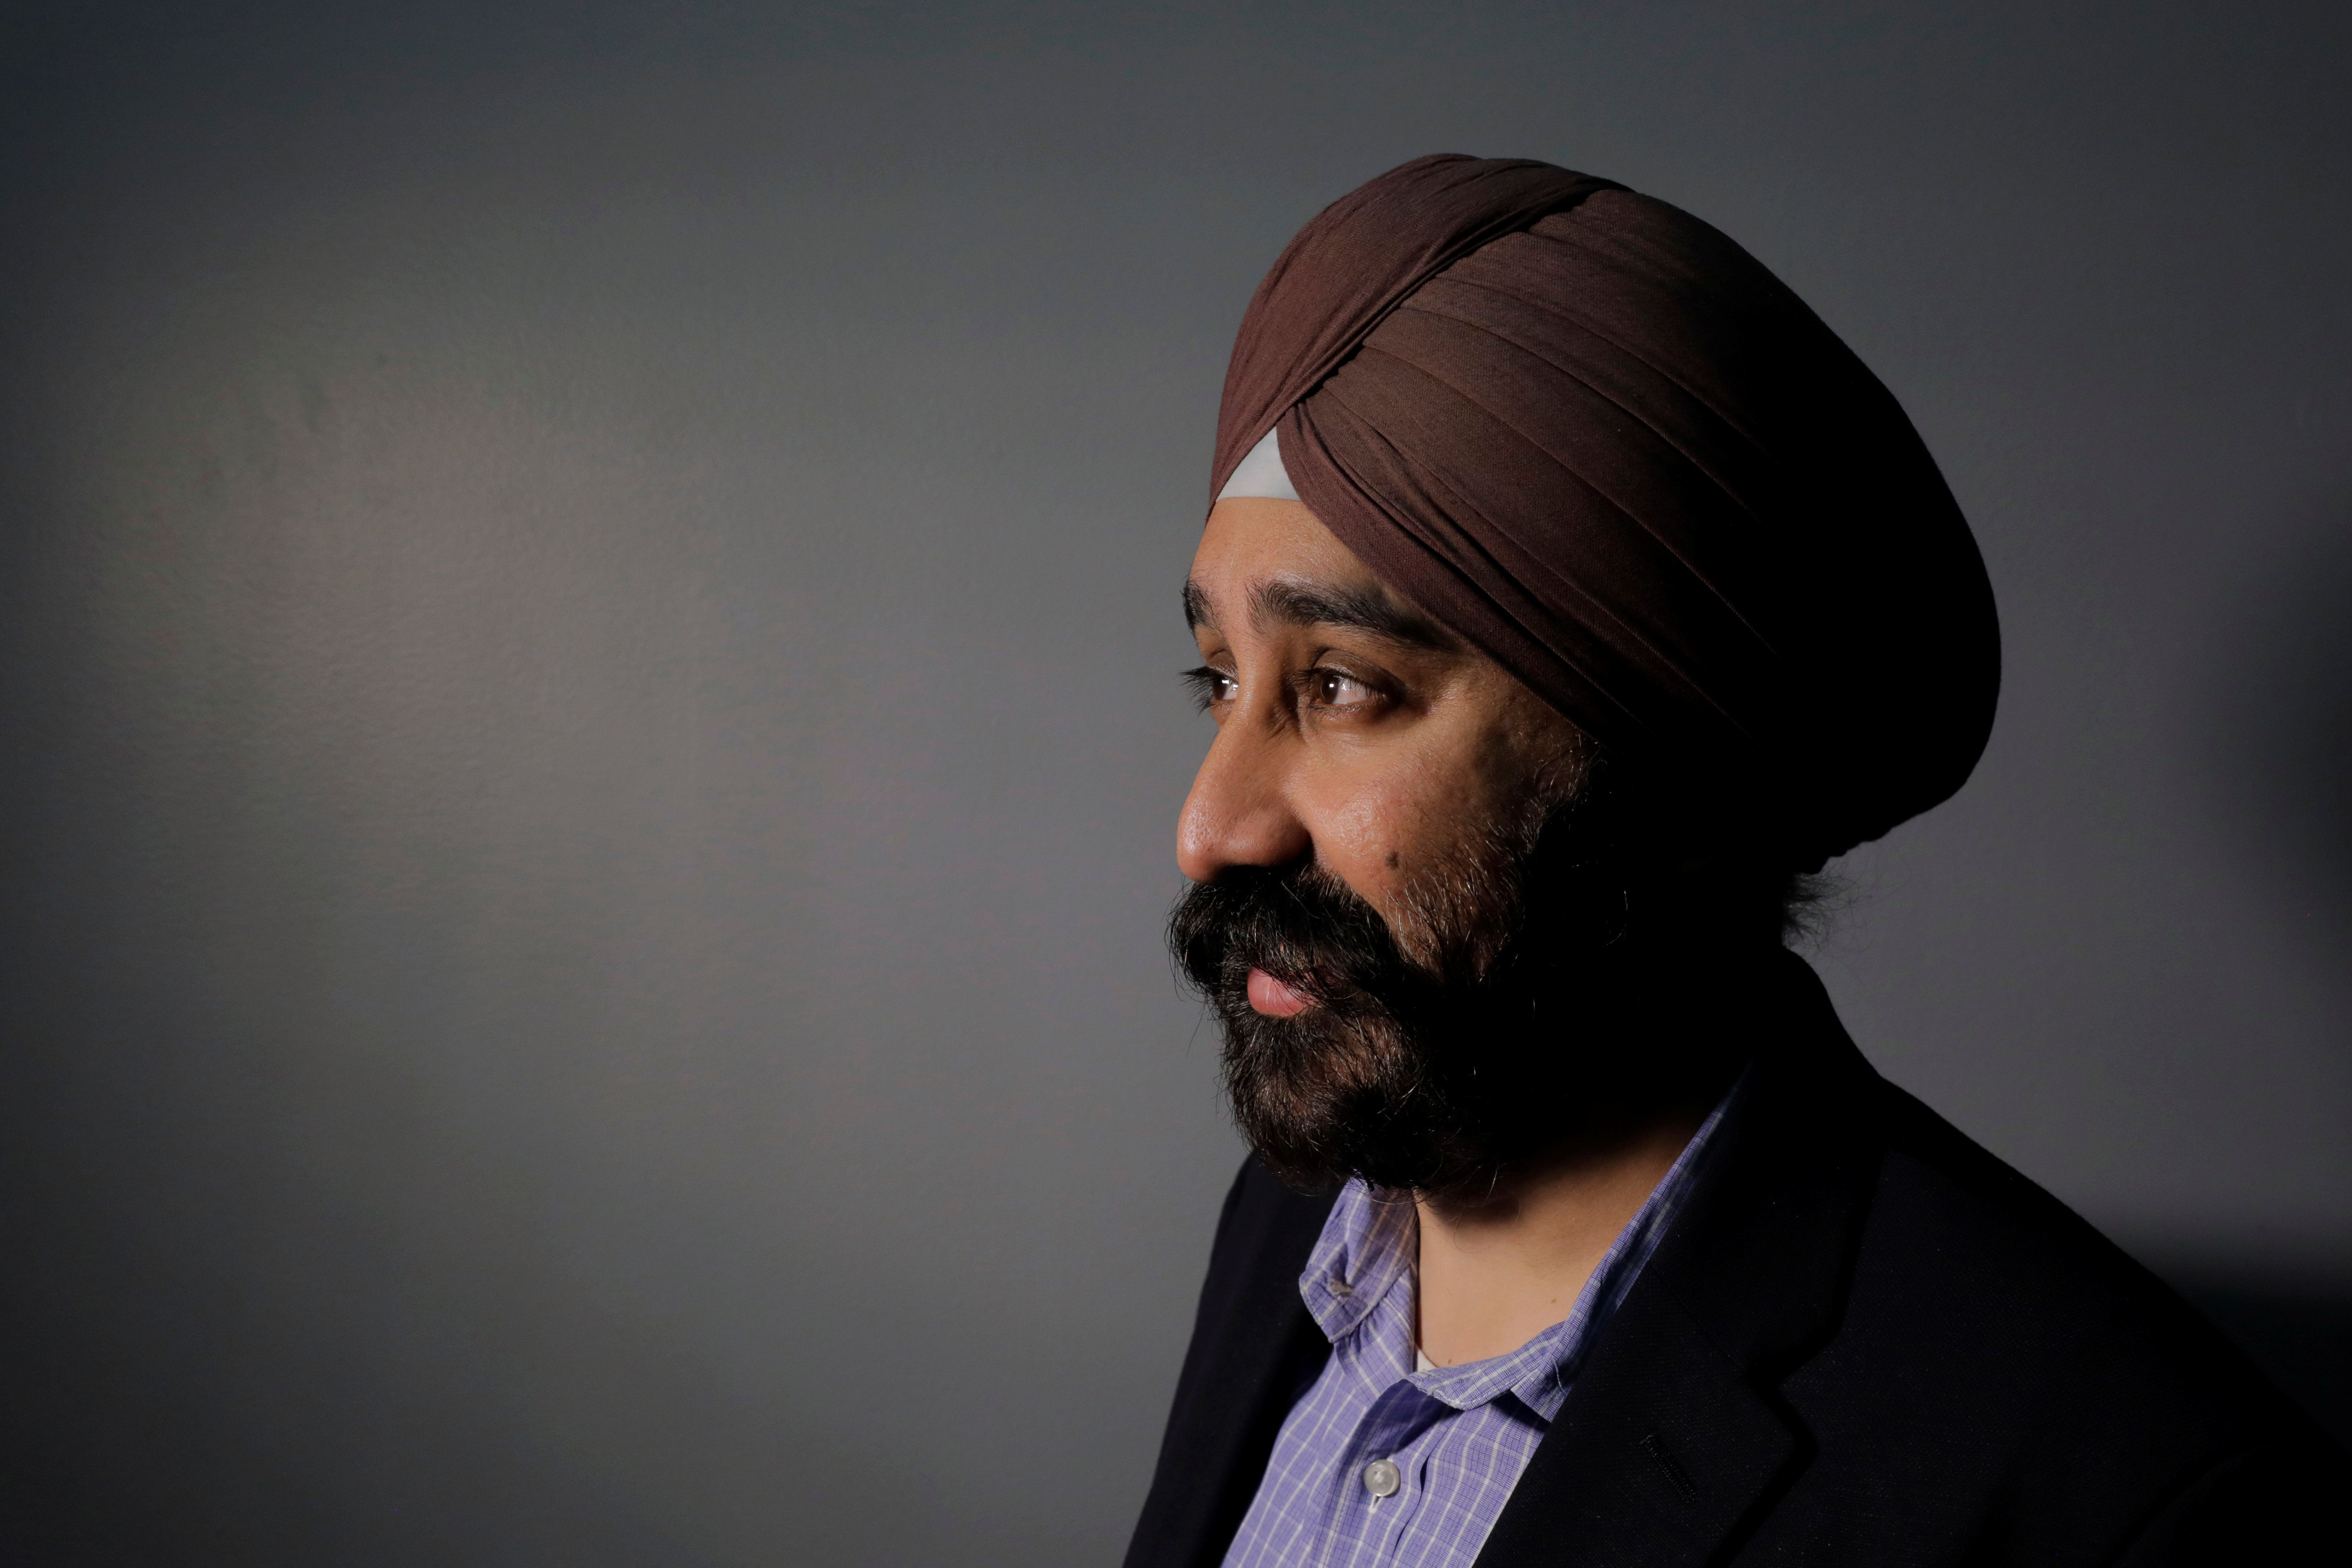 New Jersey's First Sikh Mayor Says He's Received Death